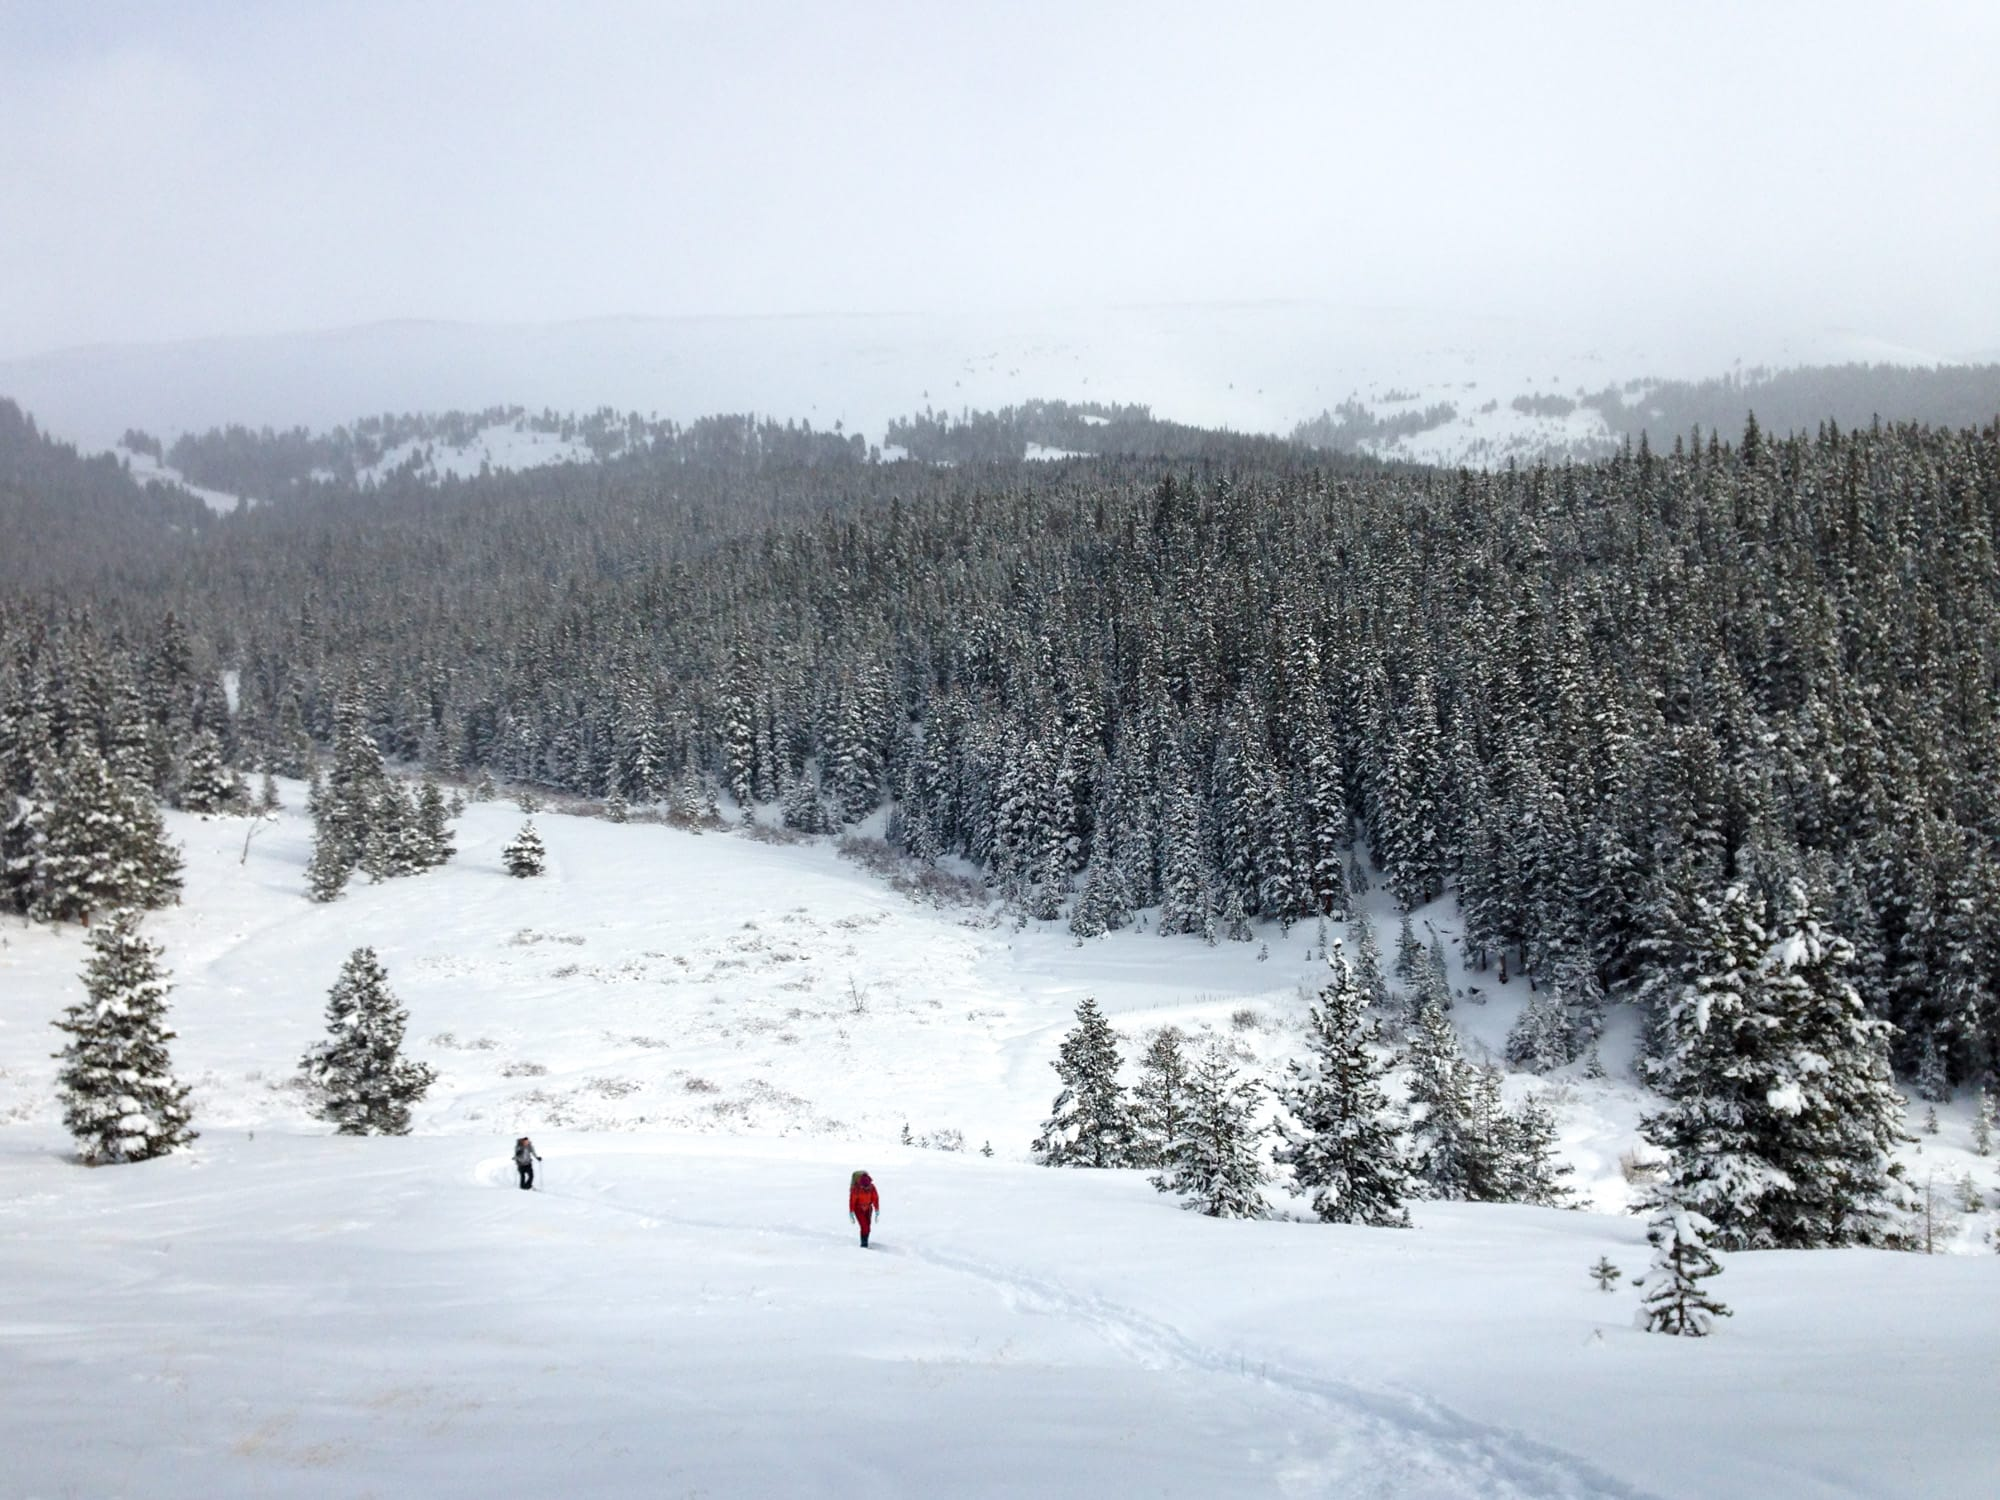 Reason to take a backcountry hut trip - #1: Far from the crowds, close to the powder